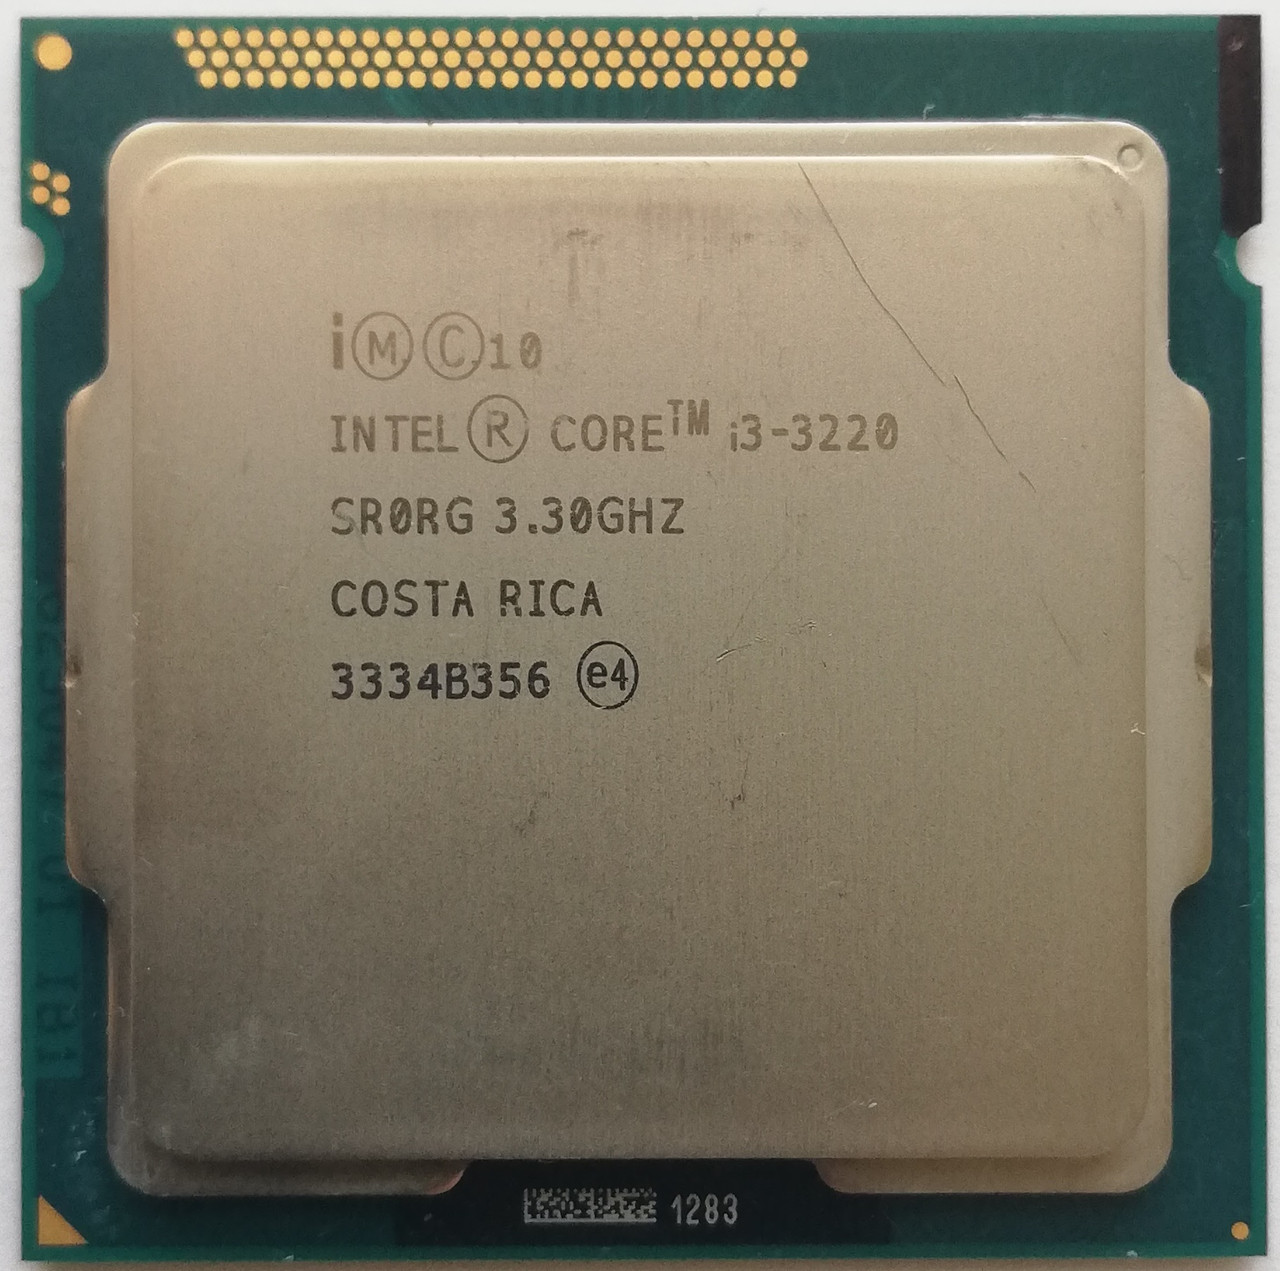 Процессор Intel Core i3-3220 SRORG 3.3GHz 3M Cache Socket 1155 Б/У